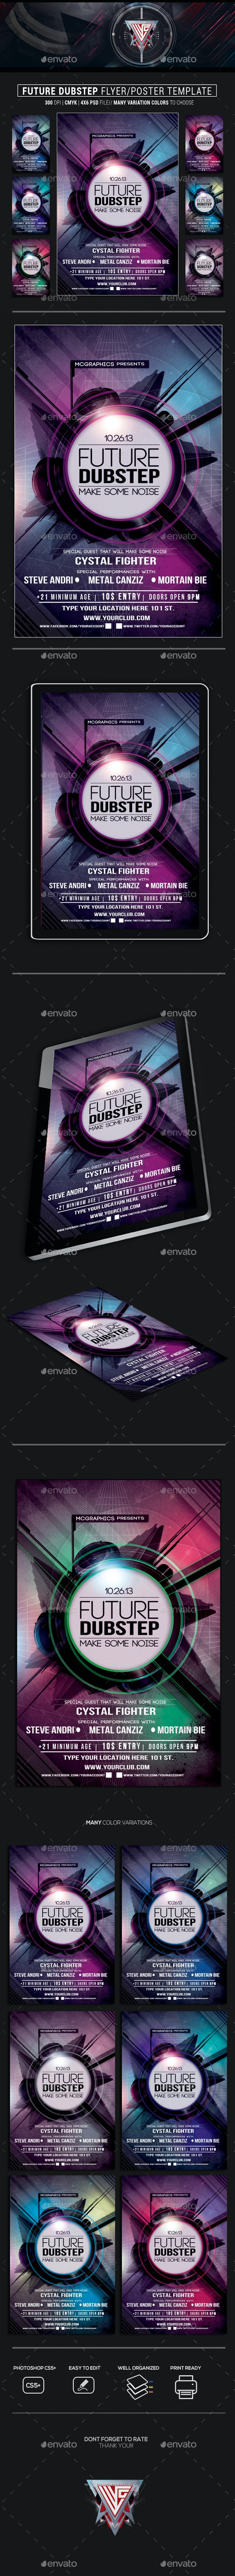 Future Dubstep Flyer Template - Events Flyers